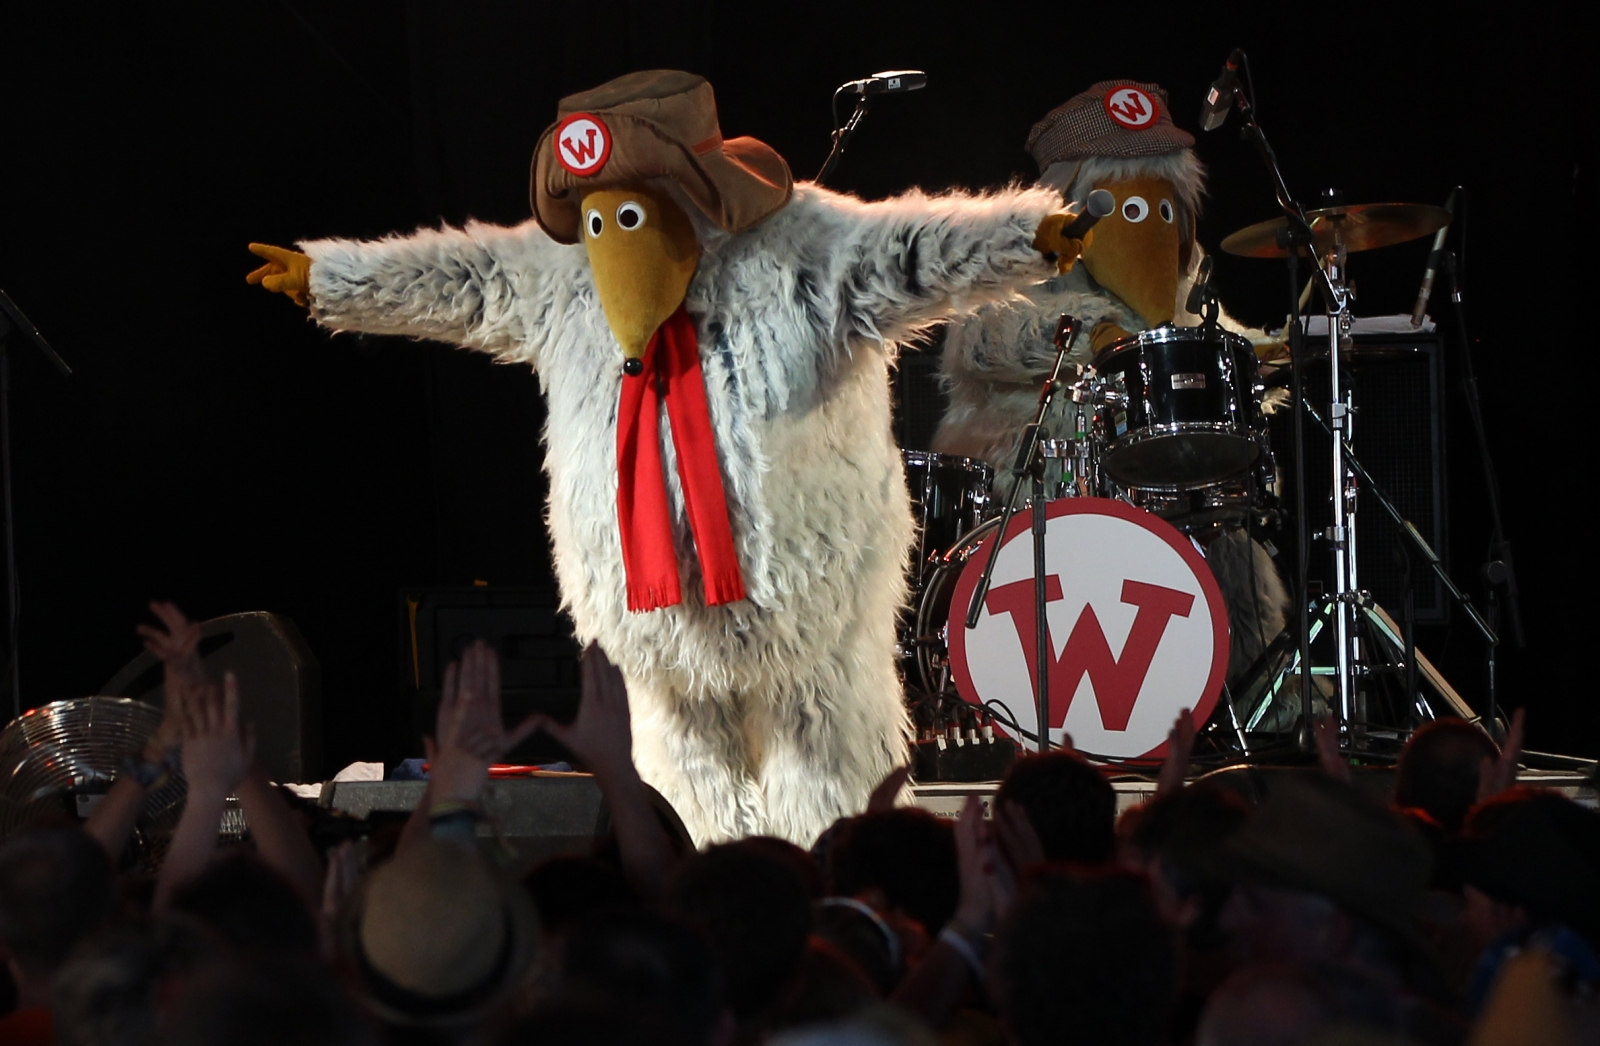 The Wombles performing at Glastonbury